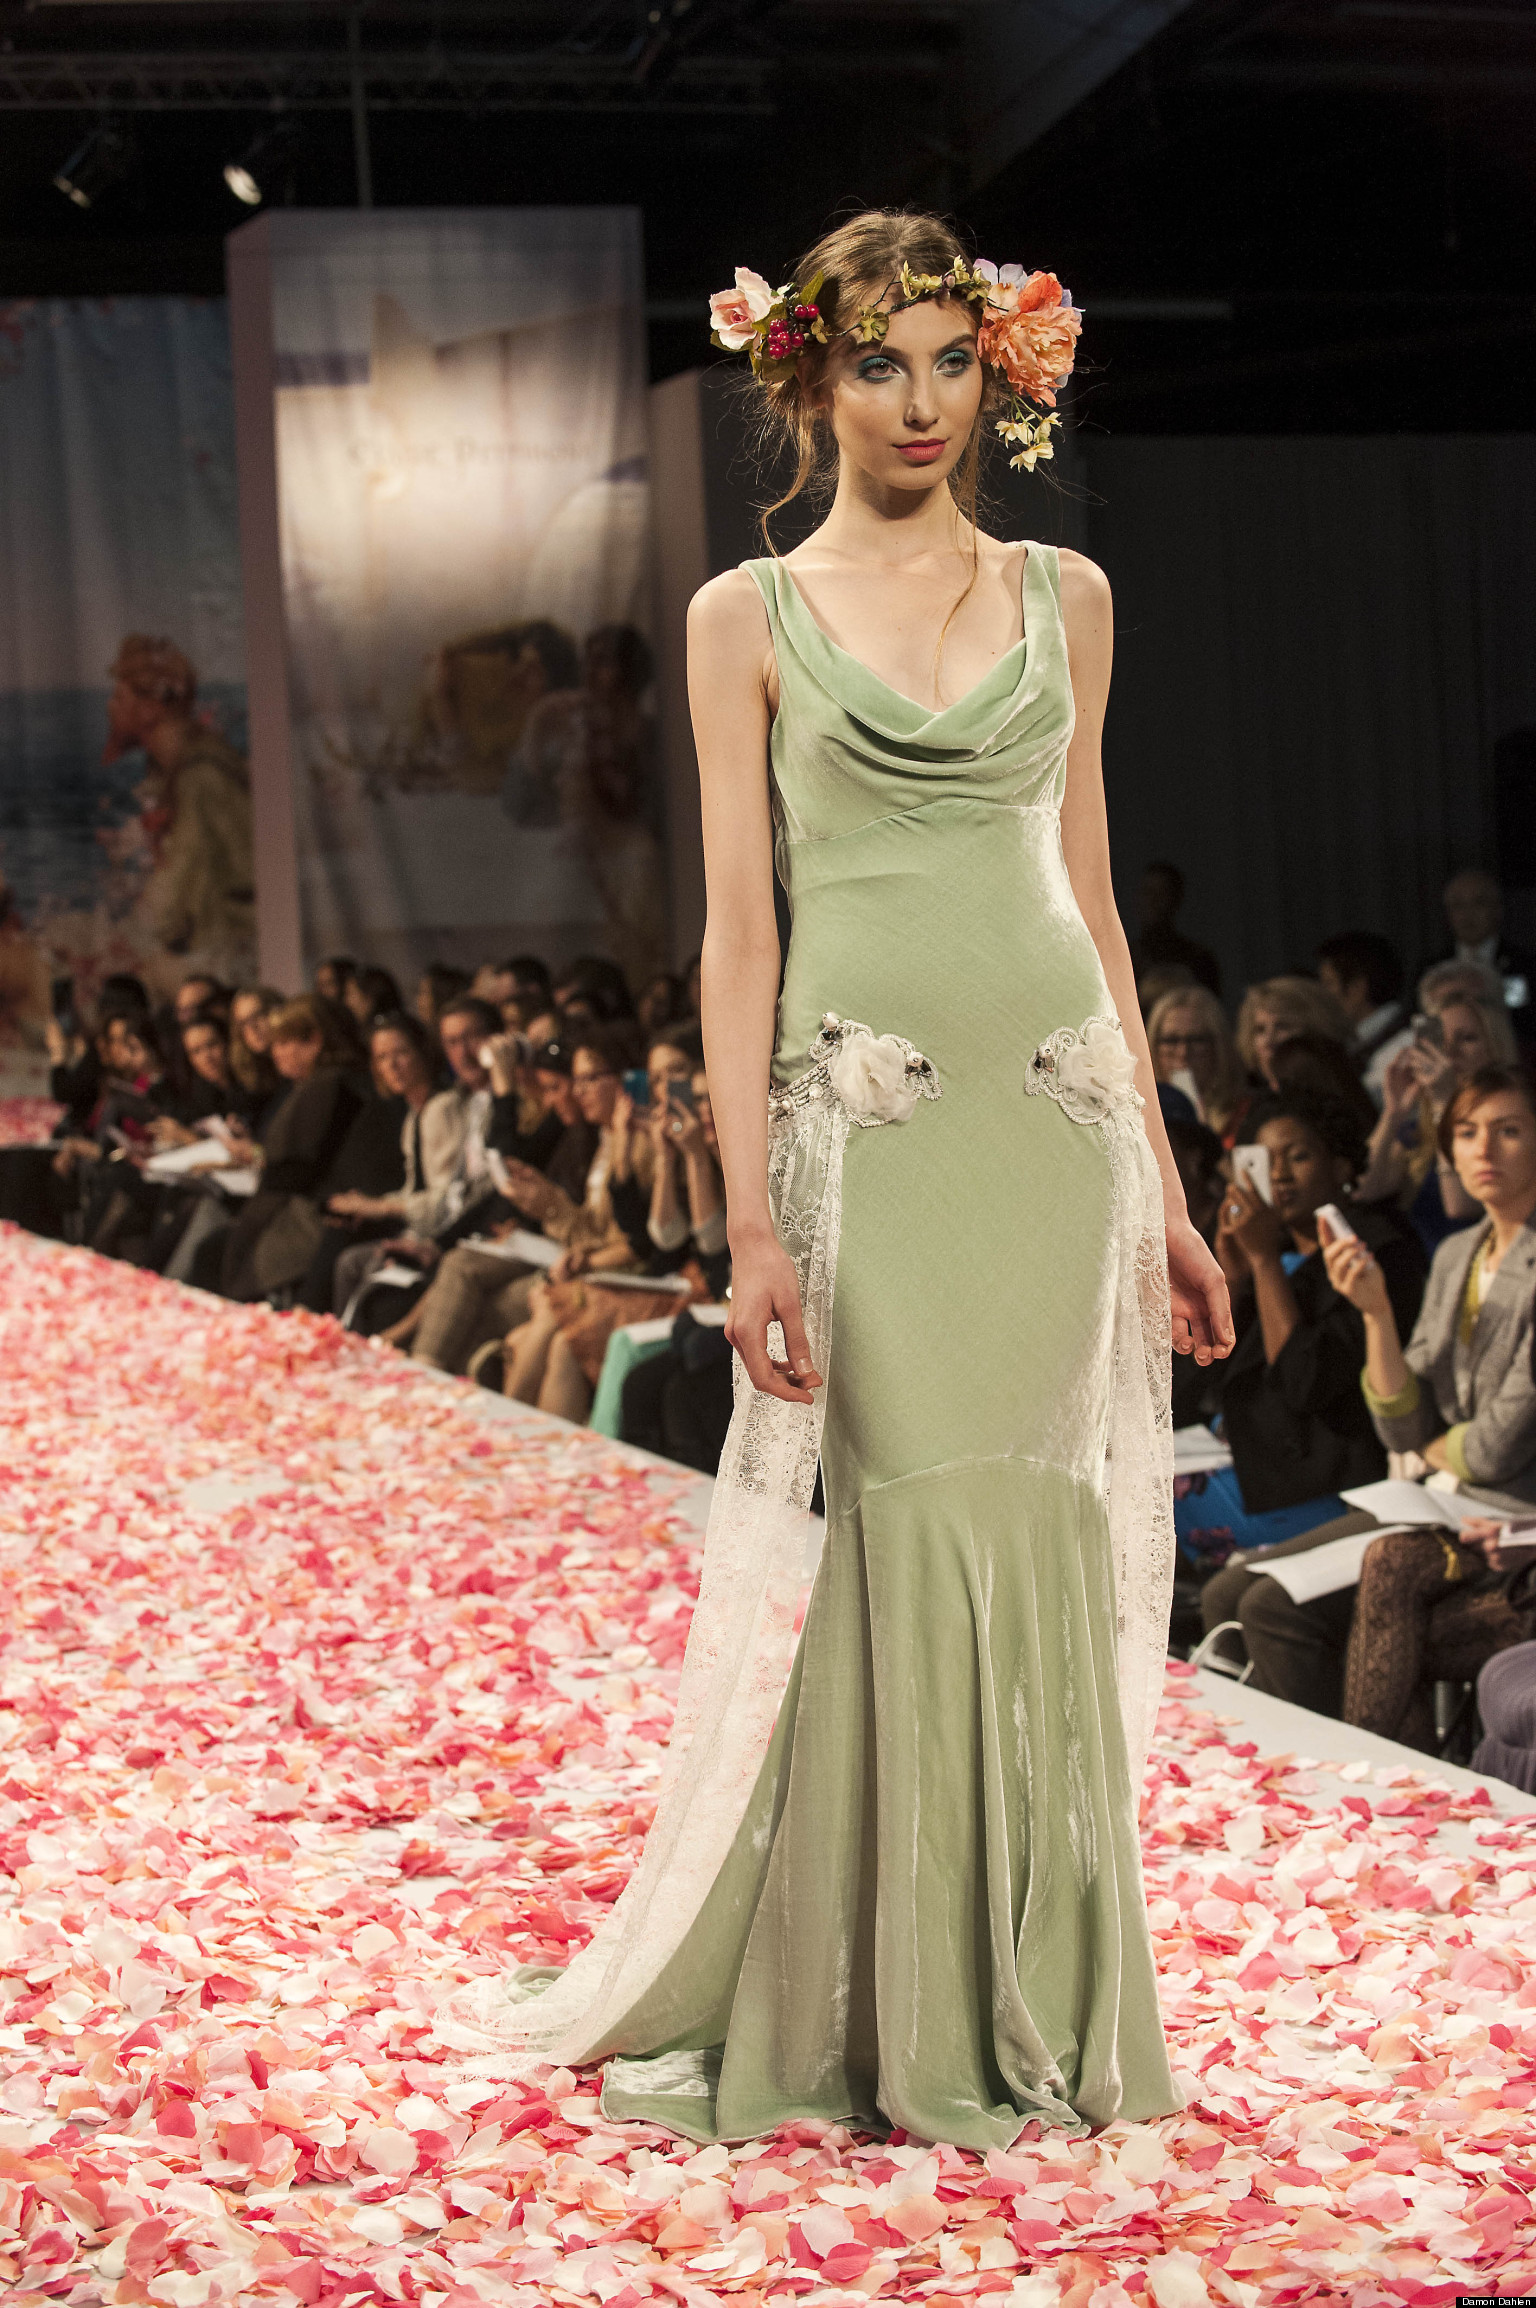 Colored Wedding Dresses In Fall 2013 Collections PHOTOS